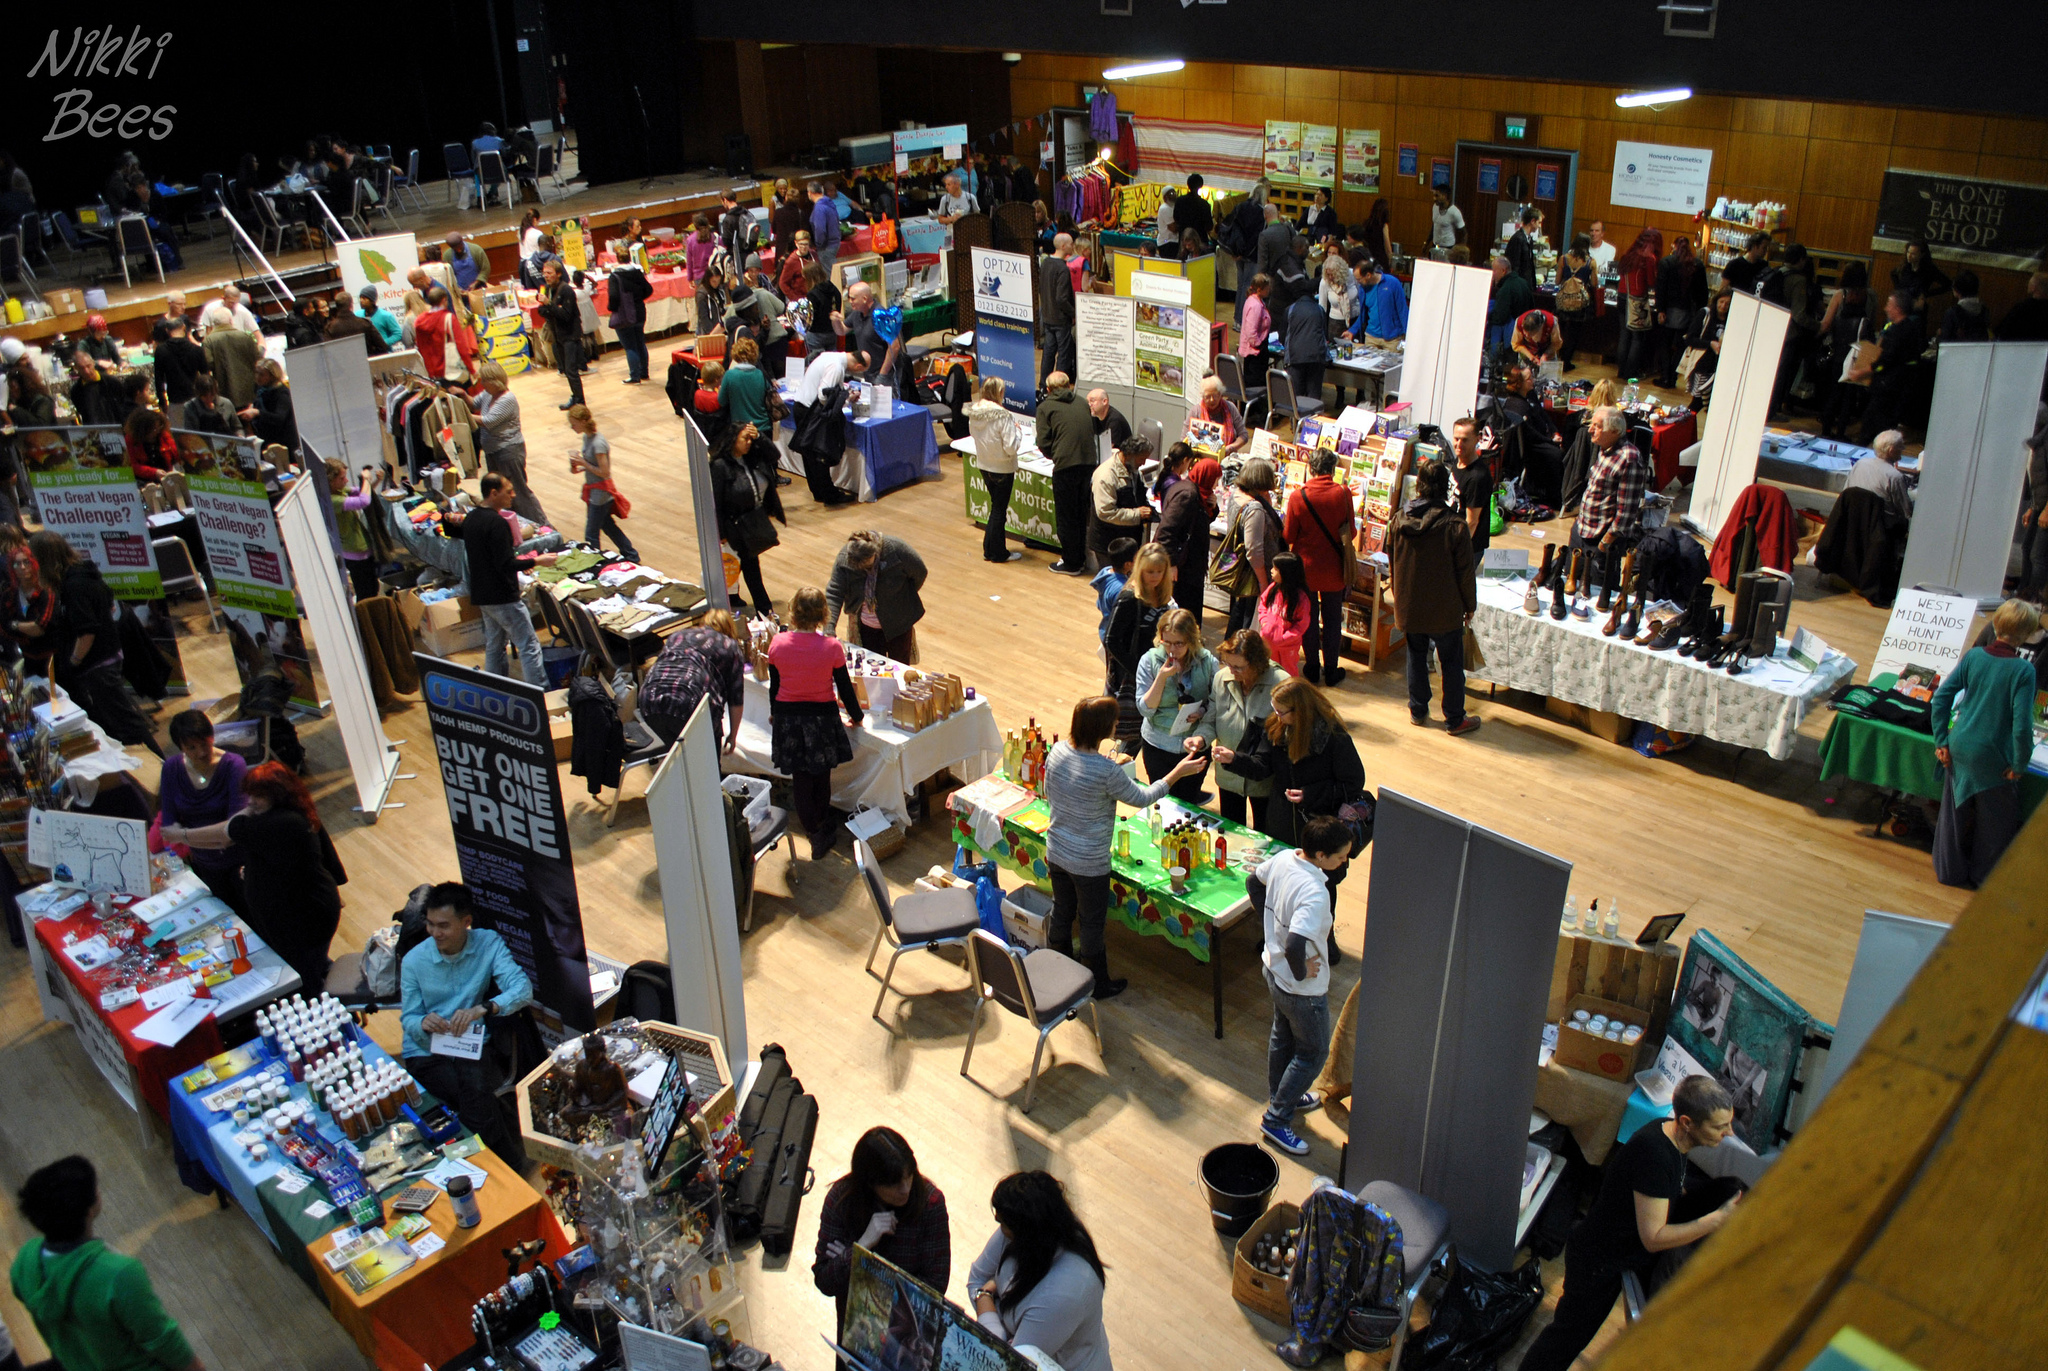 A vegan exhibition with various exhibit stands